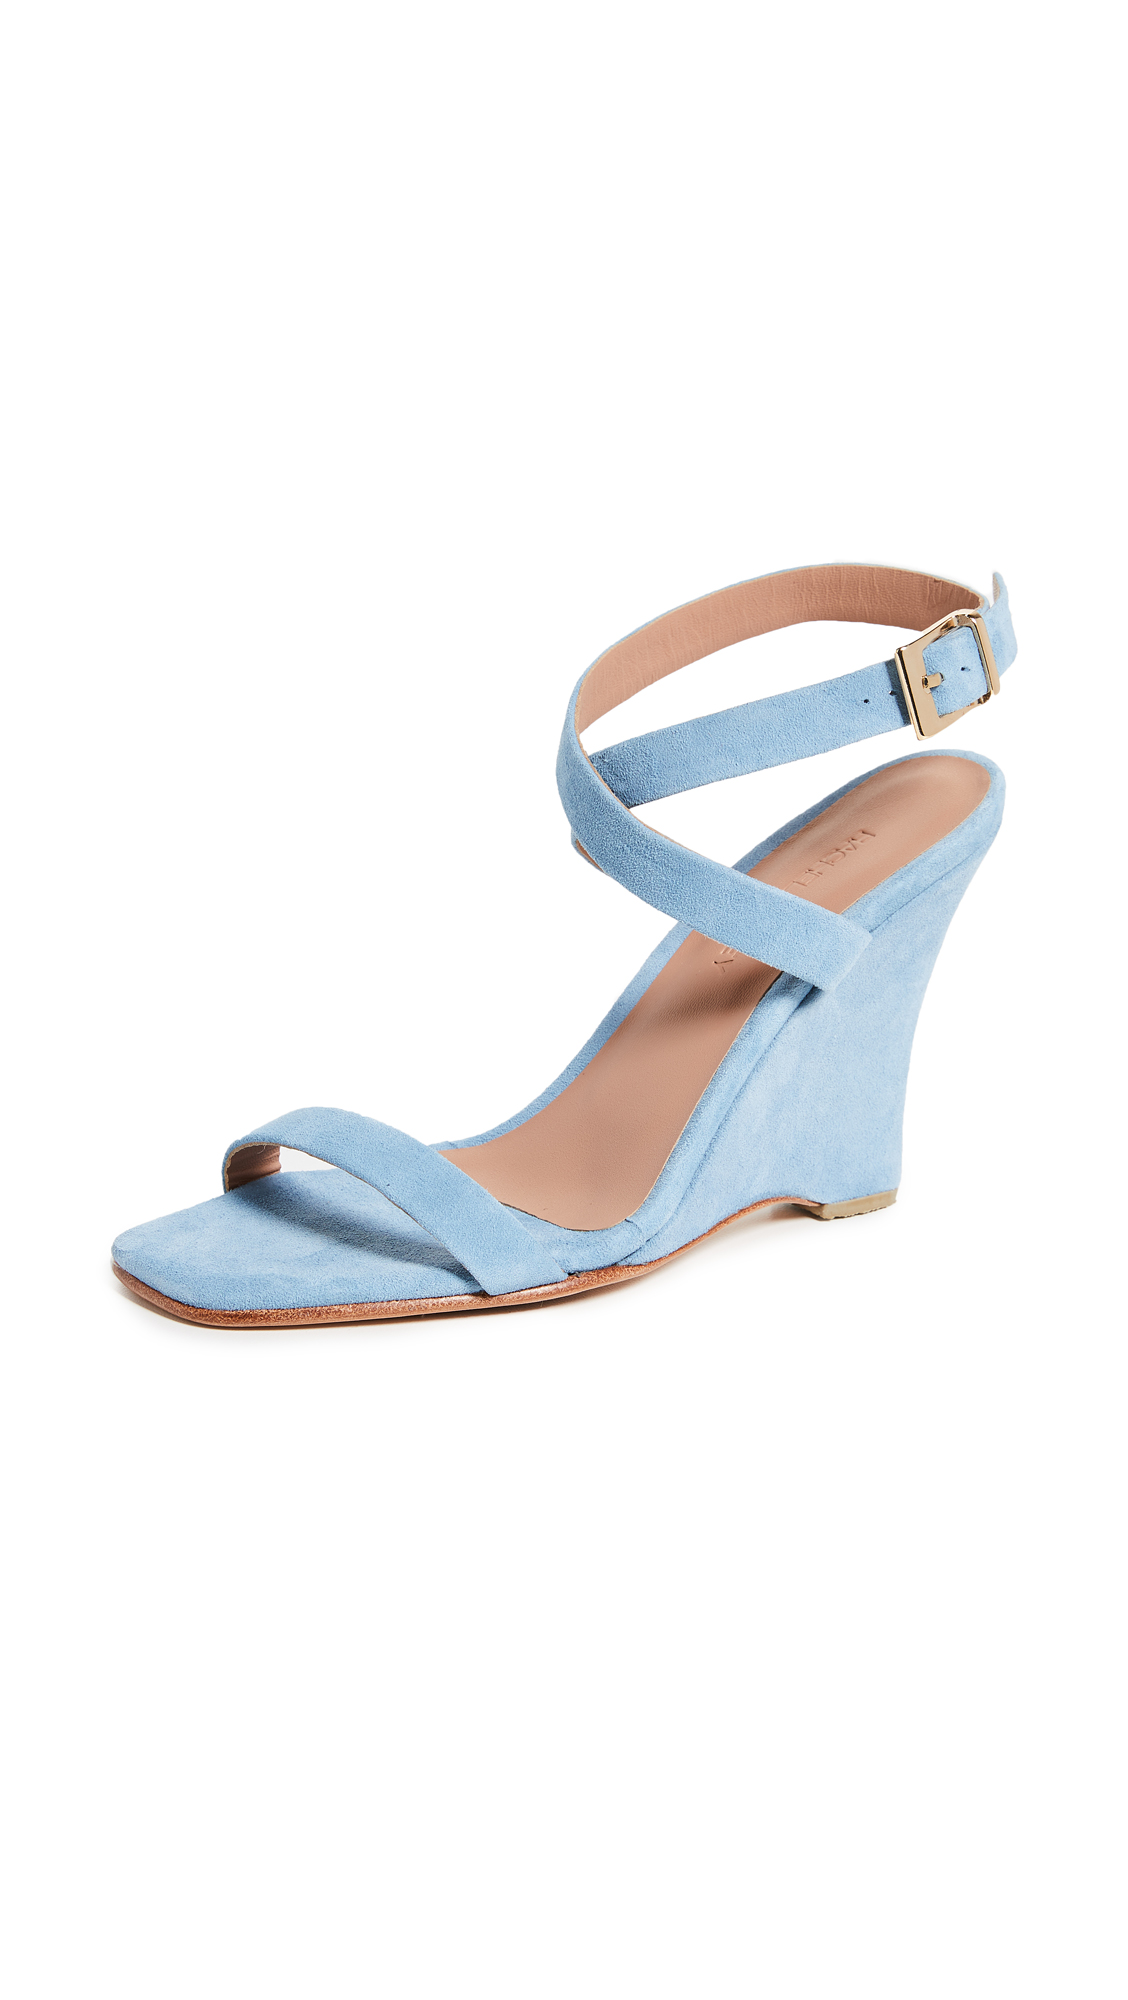 Rachel Comey Chord Wedges - Cornflower Blue